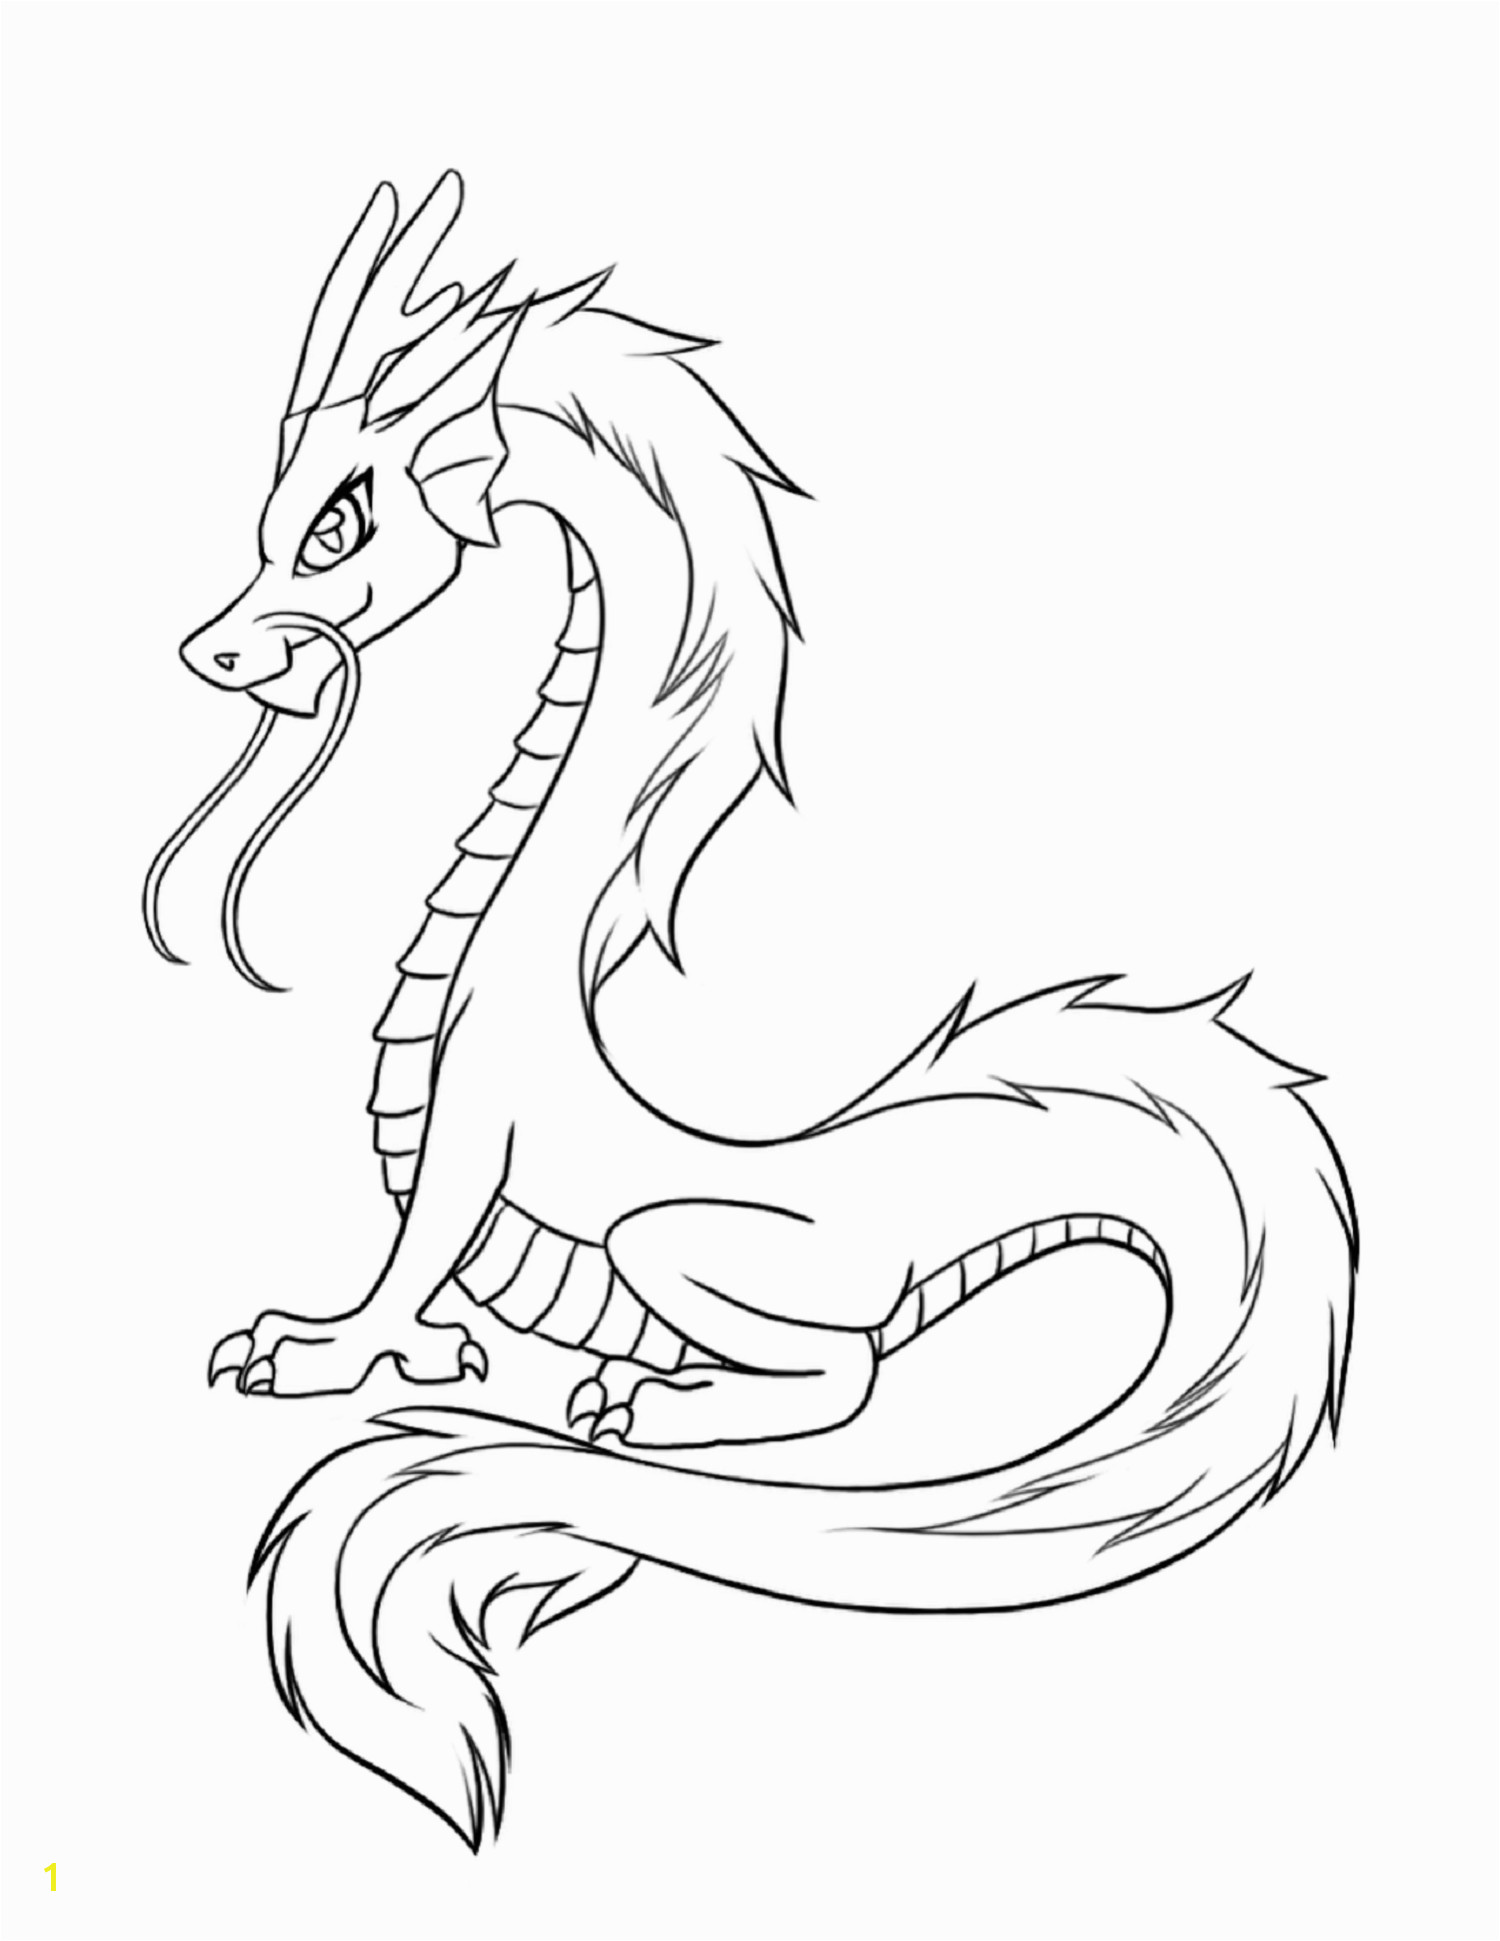 Dragon Coloring Pages for Fun Coloring